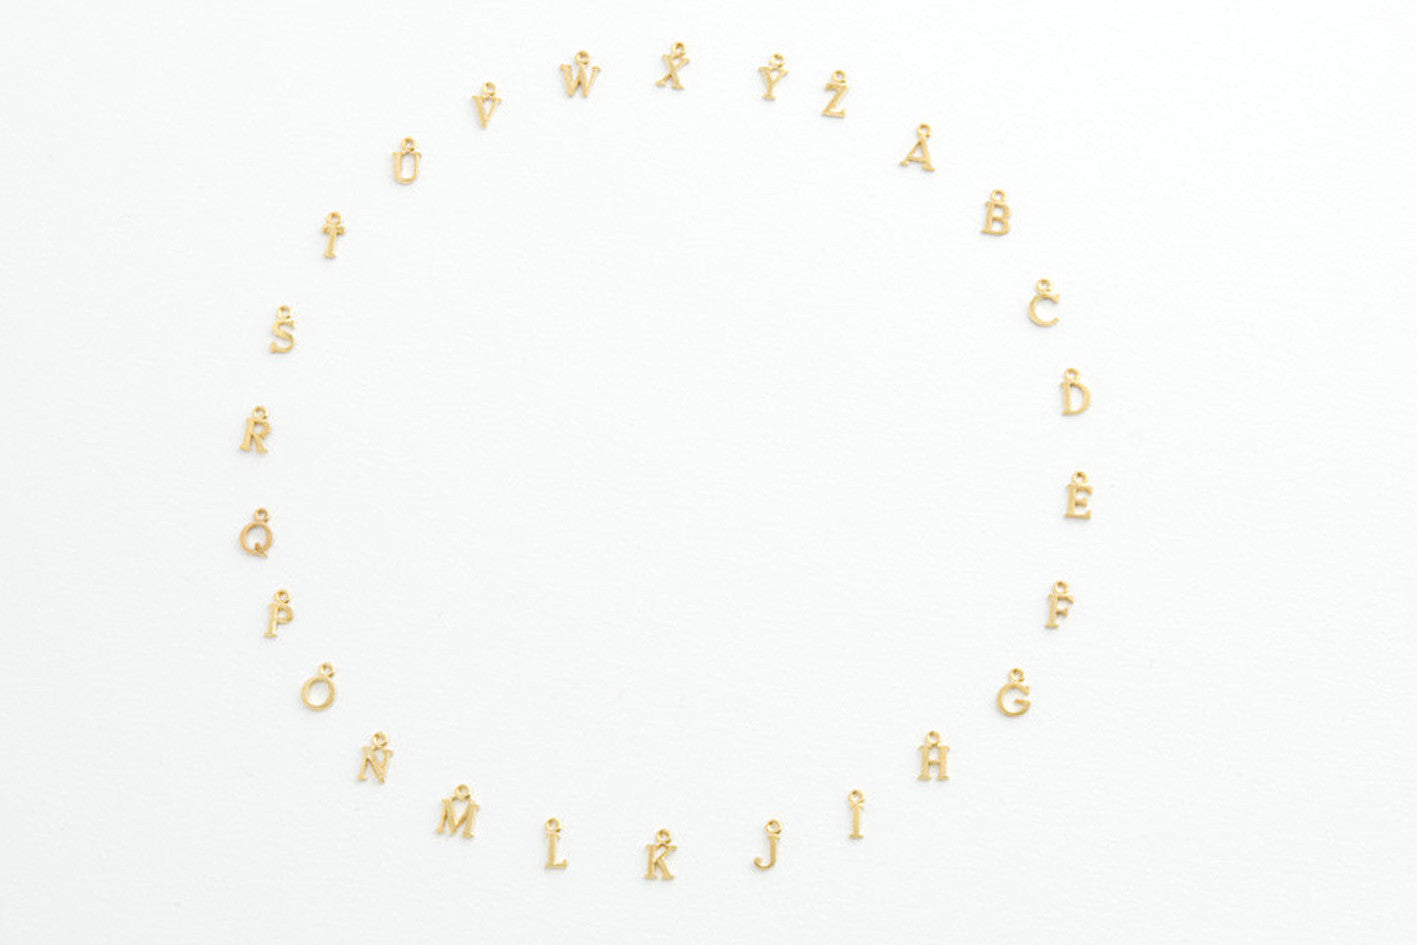 ....Kette ALPHABET ROSA vergoldet..Necklace ALPHABET ROSE gold plated....